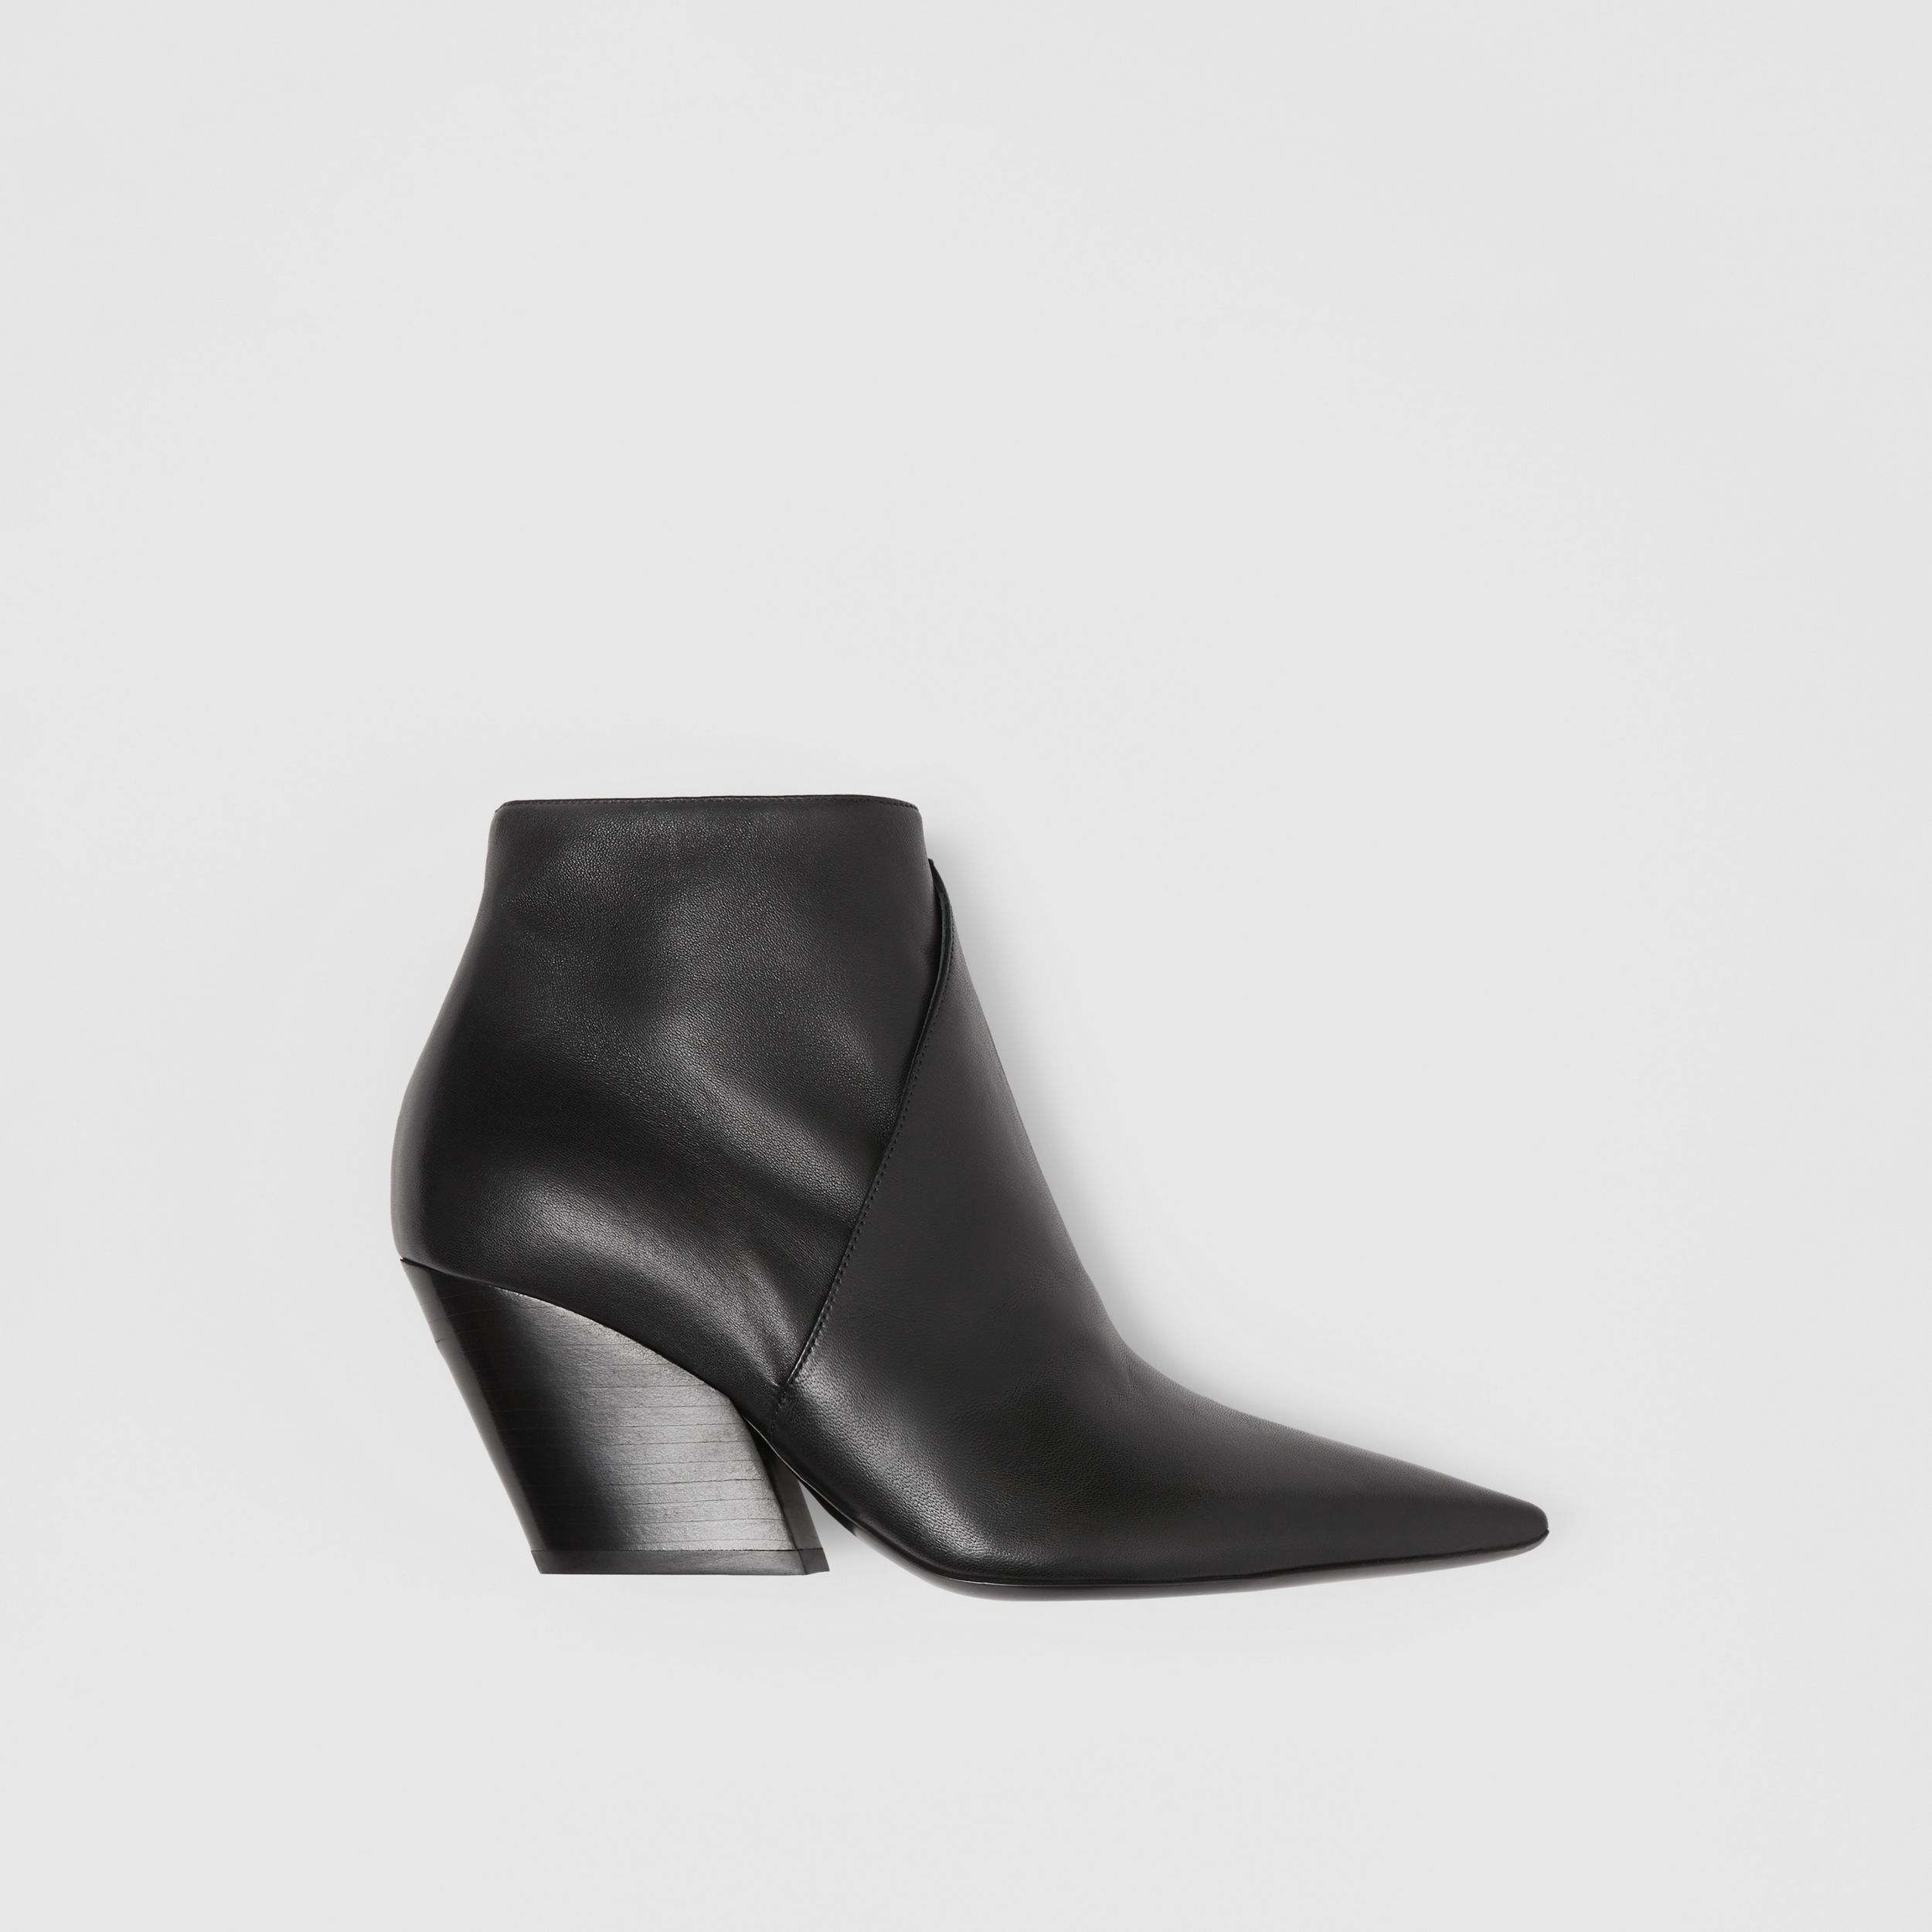 Leather Ankle Boots in Black - Women | Burberry - 1